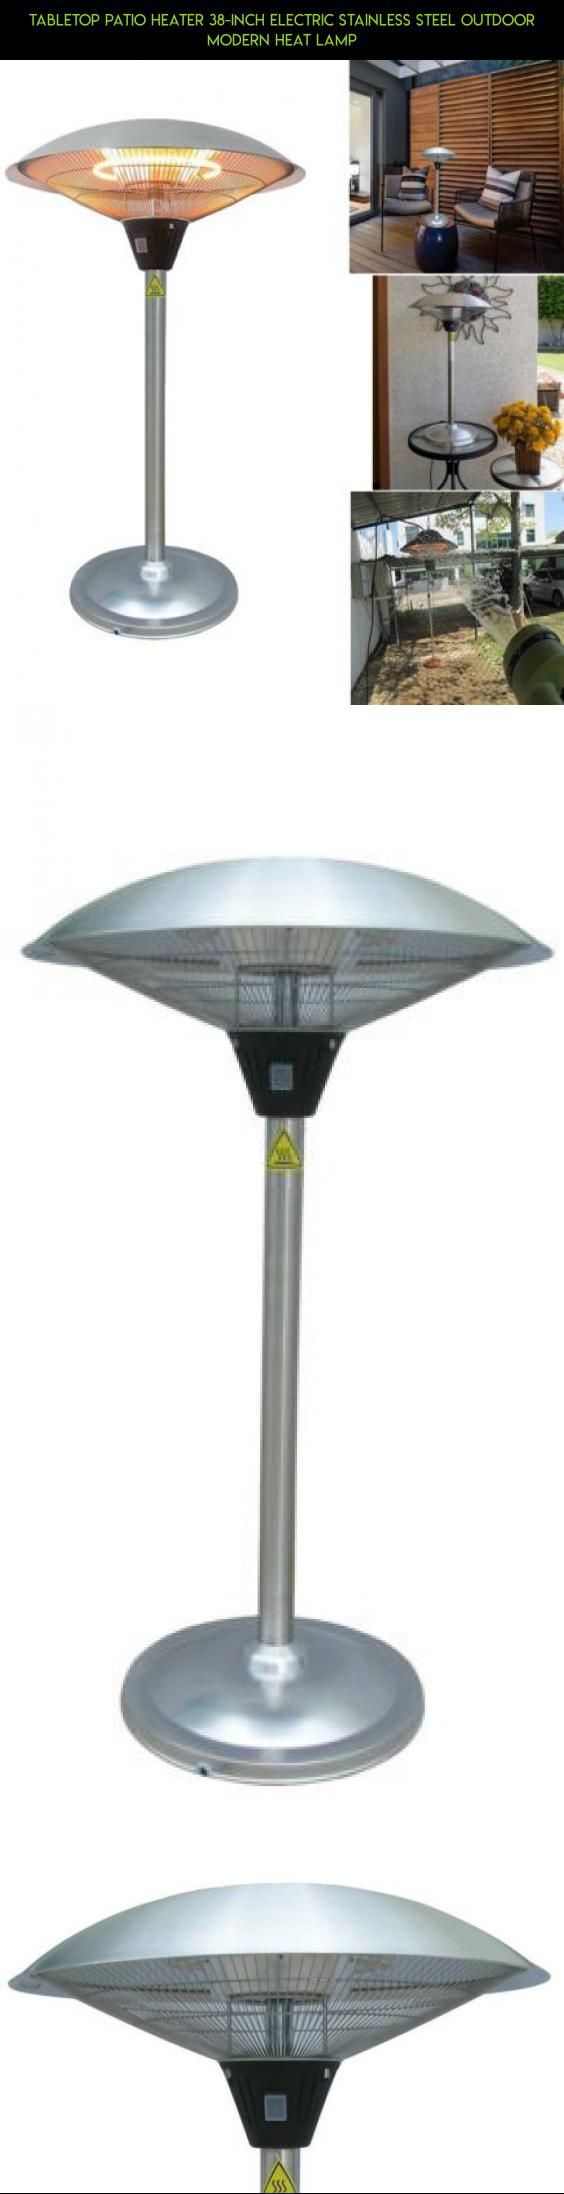 Tabletop Patio Heater 38 Inch Electric Stainless Steel Outdoor Modern Heat  Lamp #fpv #